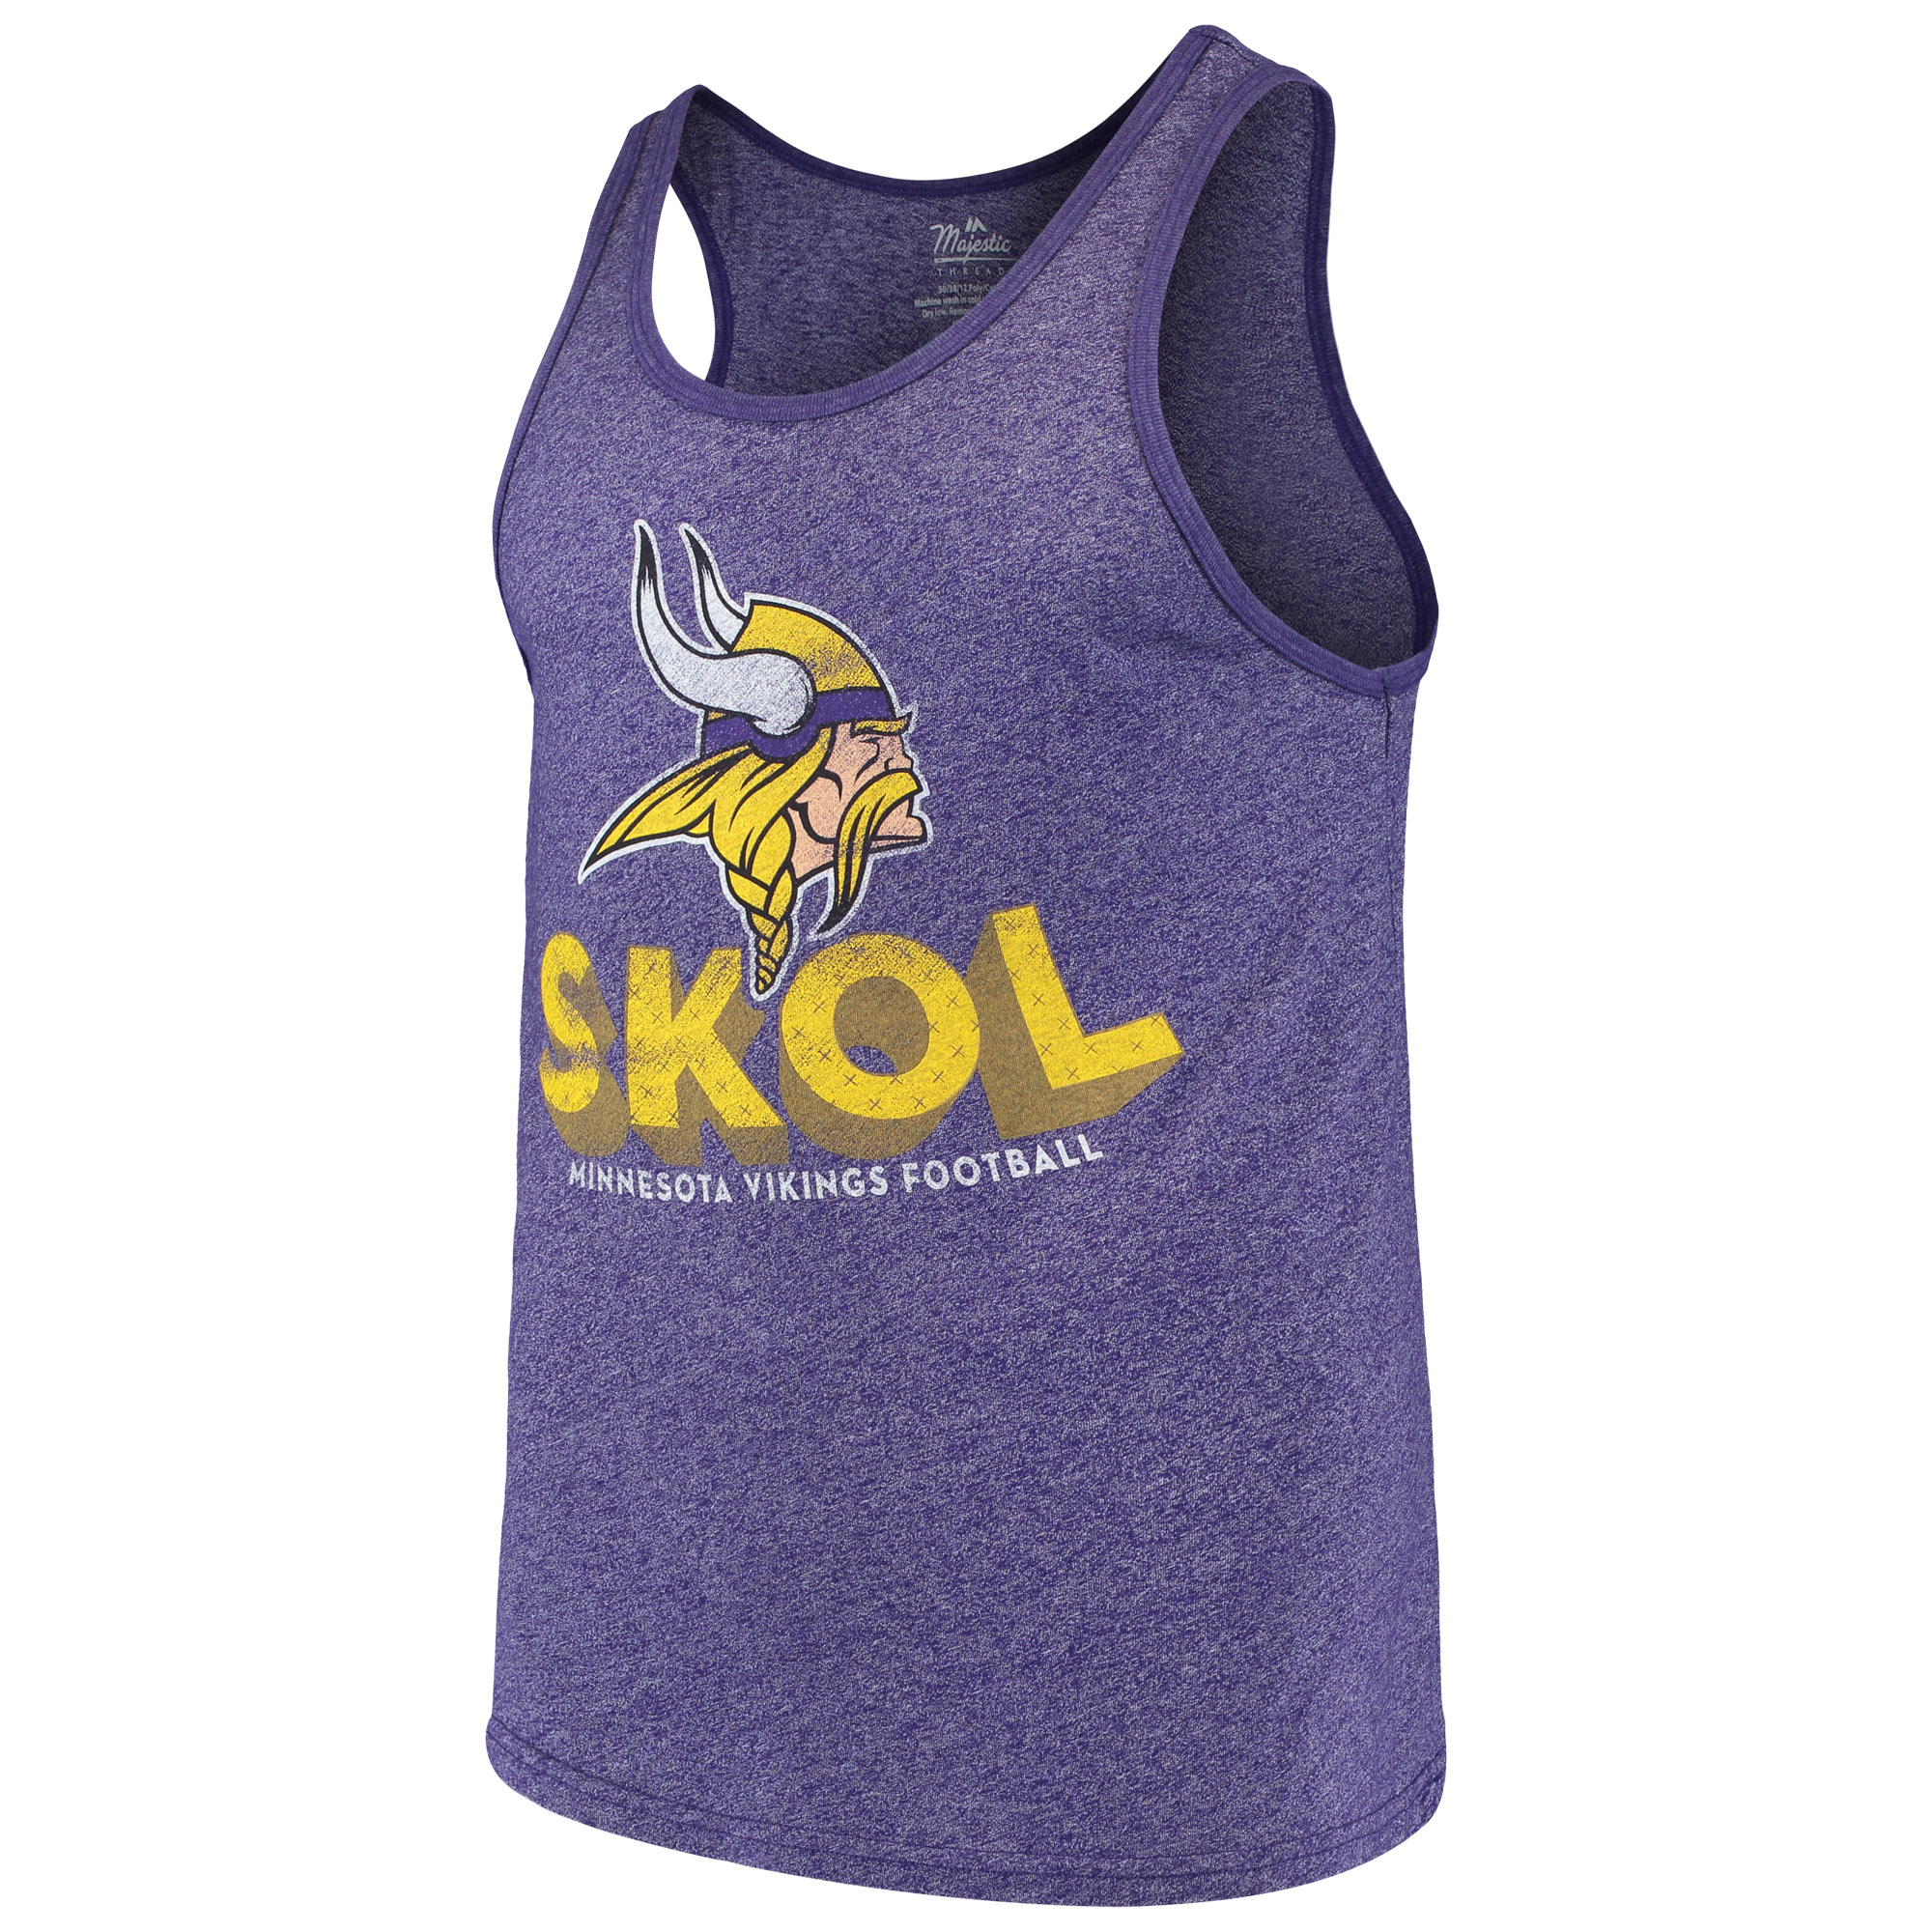 Minnesota Vikings Majestic Threads Slogan Tri-Blend Tank Top - Purple